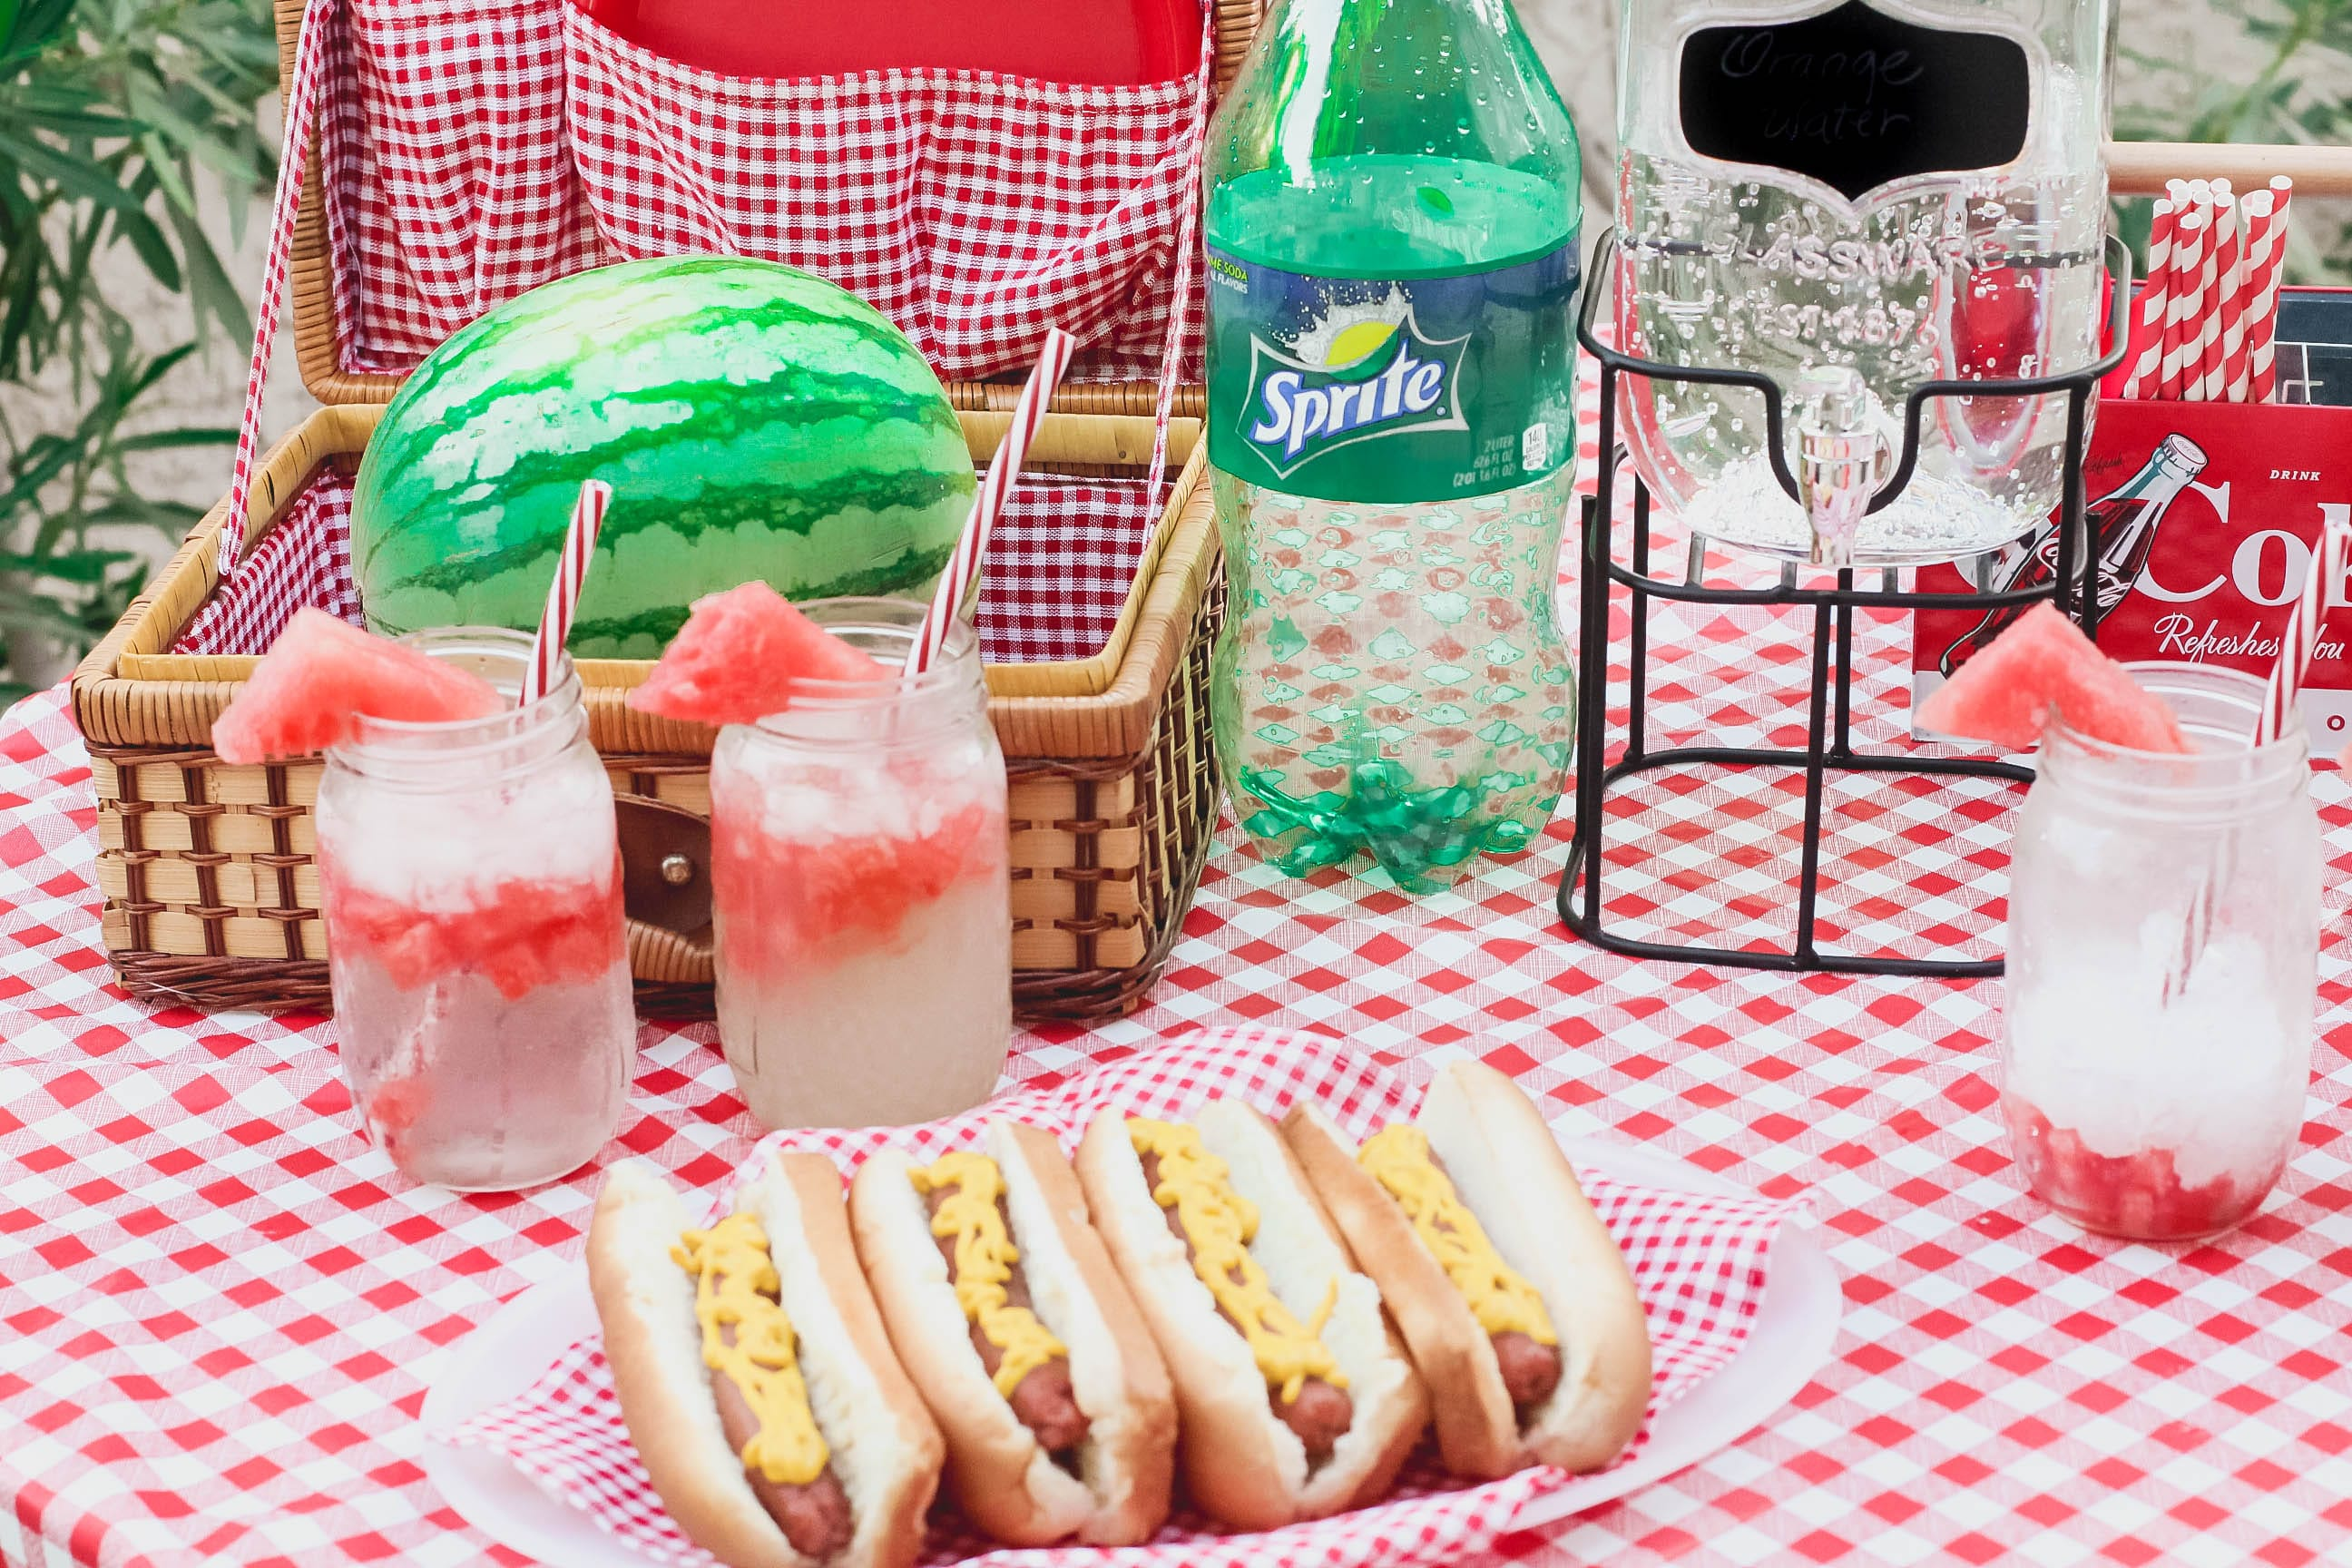 missyonmadison, melissa tierney, missyonmadison instagram, sprite, minute maid, pool party, bbq time, summertime 2017, summertime bbq, summertime pool party, summer 2017, how to throw a pool party, how to entertain this summer, kroger, ralphs, la blogger, fashion blogger, lifestyle blogger,